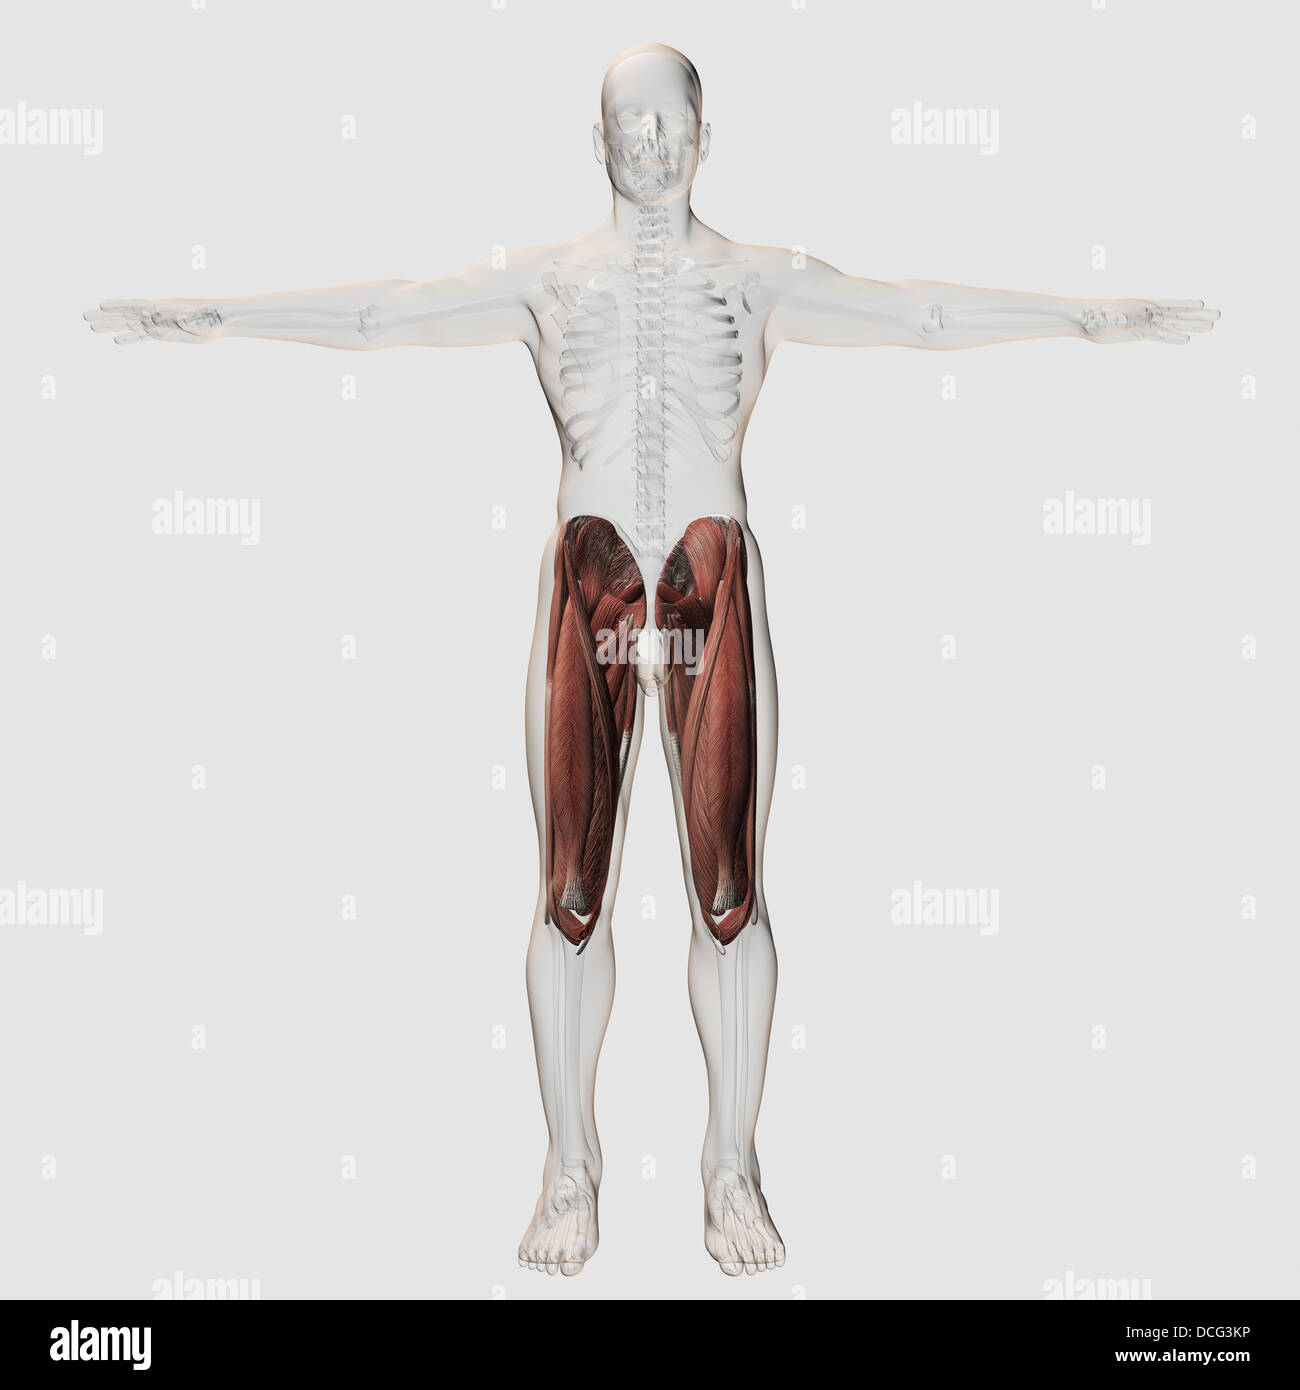 Muscle Tissue Stock Photos Muscle Tissue Stock Images Alamy